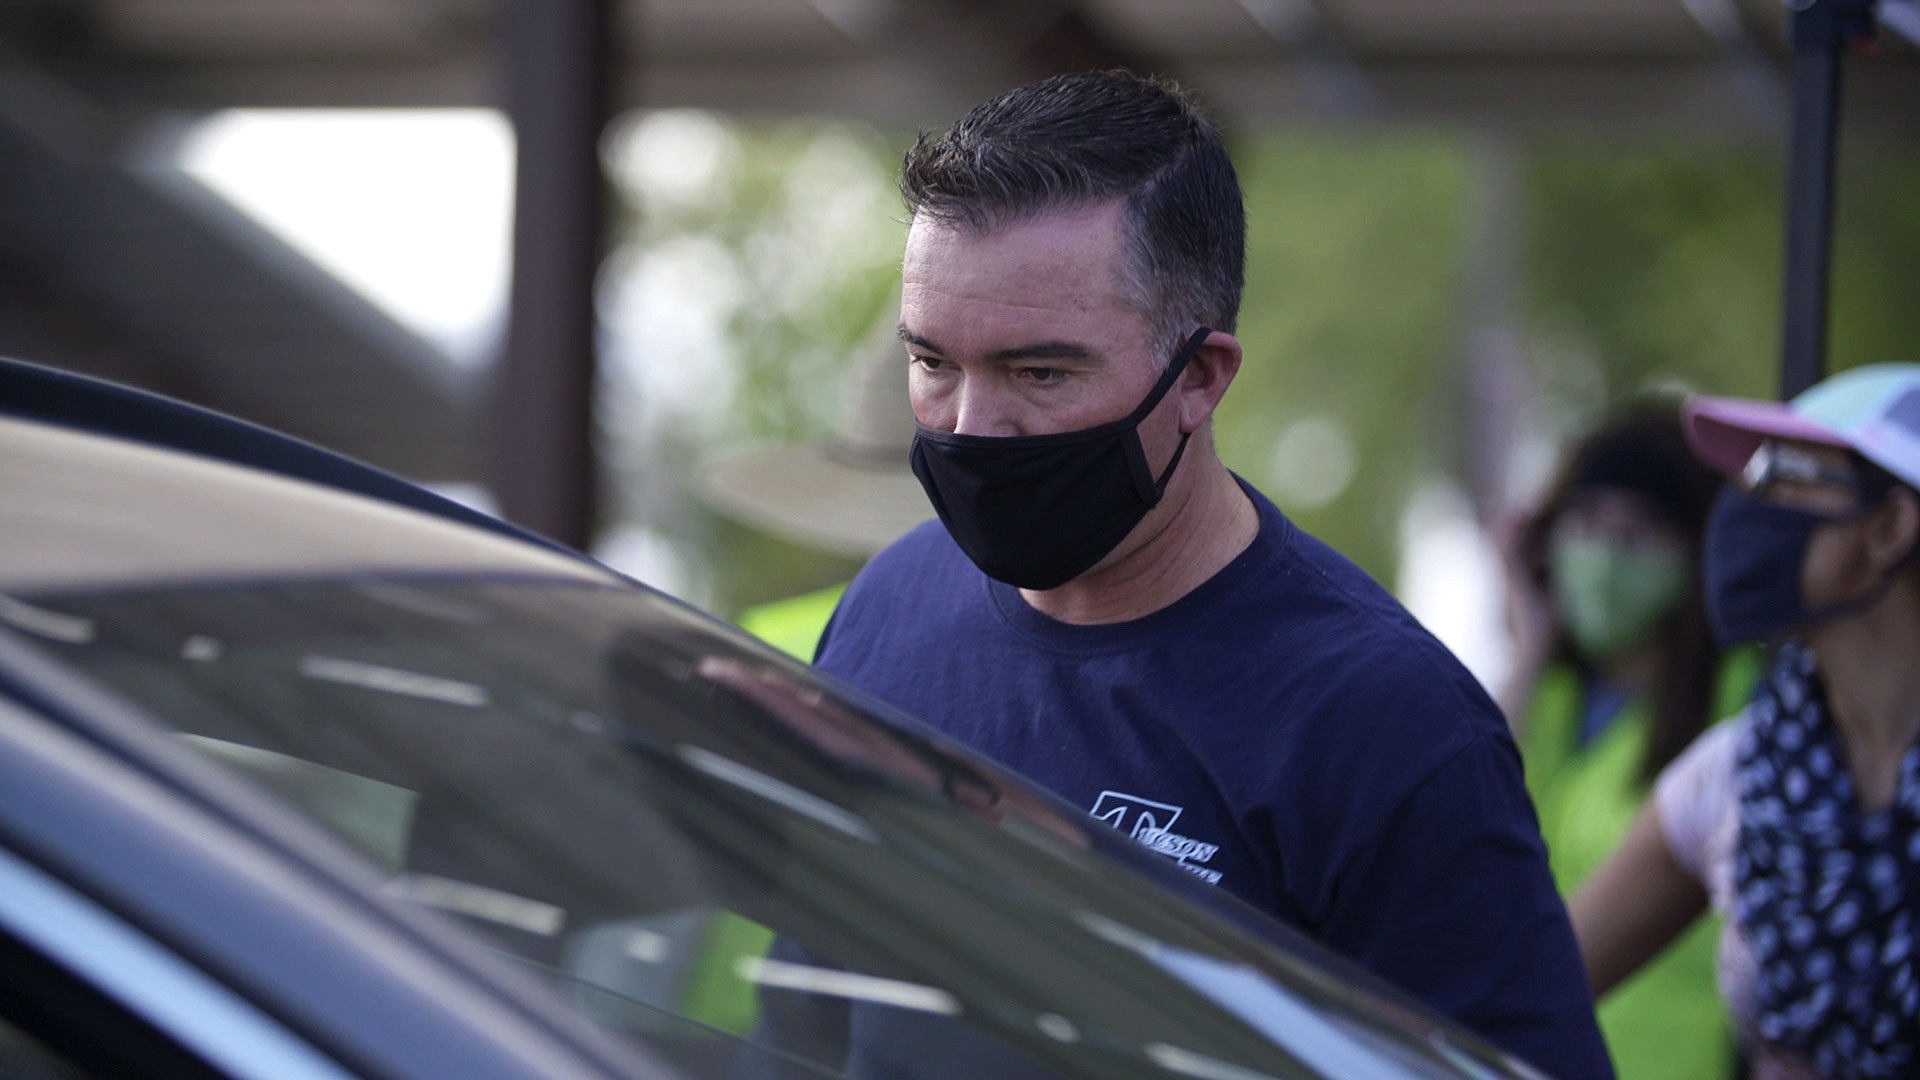 A member of the Tucson Fire Department helps distribute free masks at a giveaway event put on by the City of Tucson on July 18, 2020.